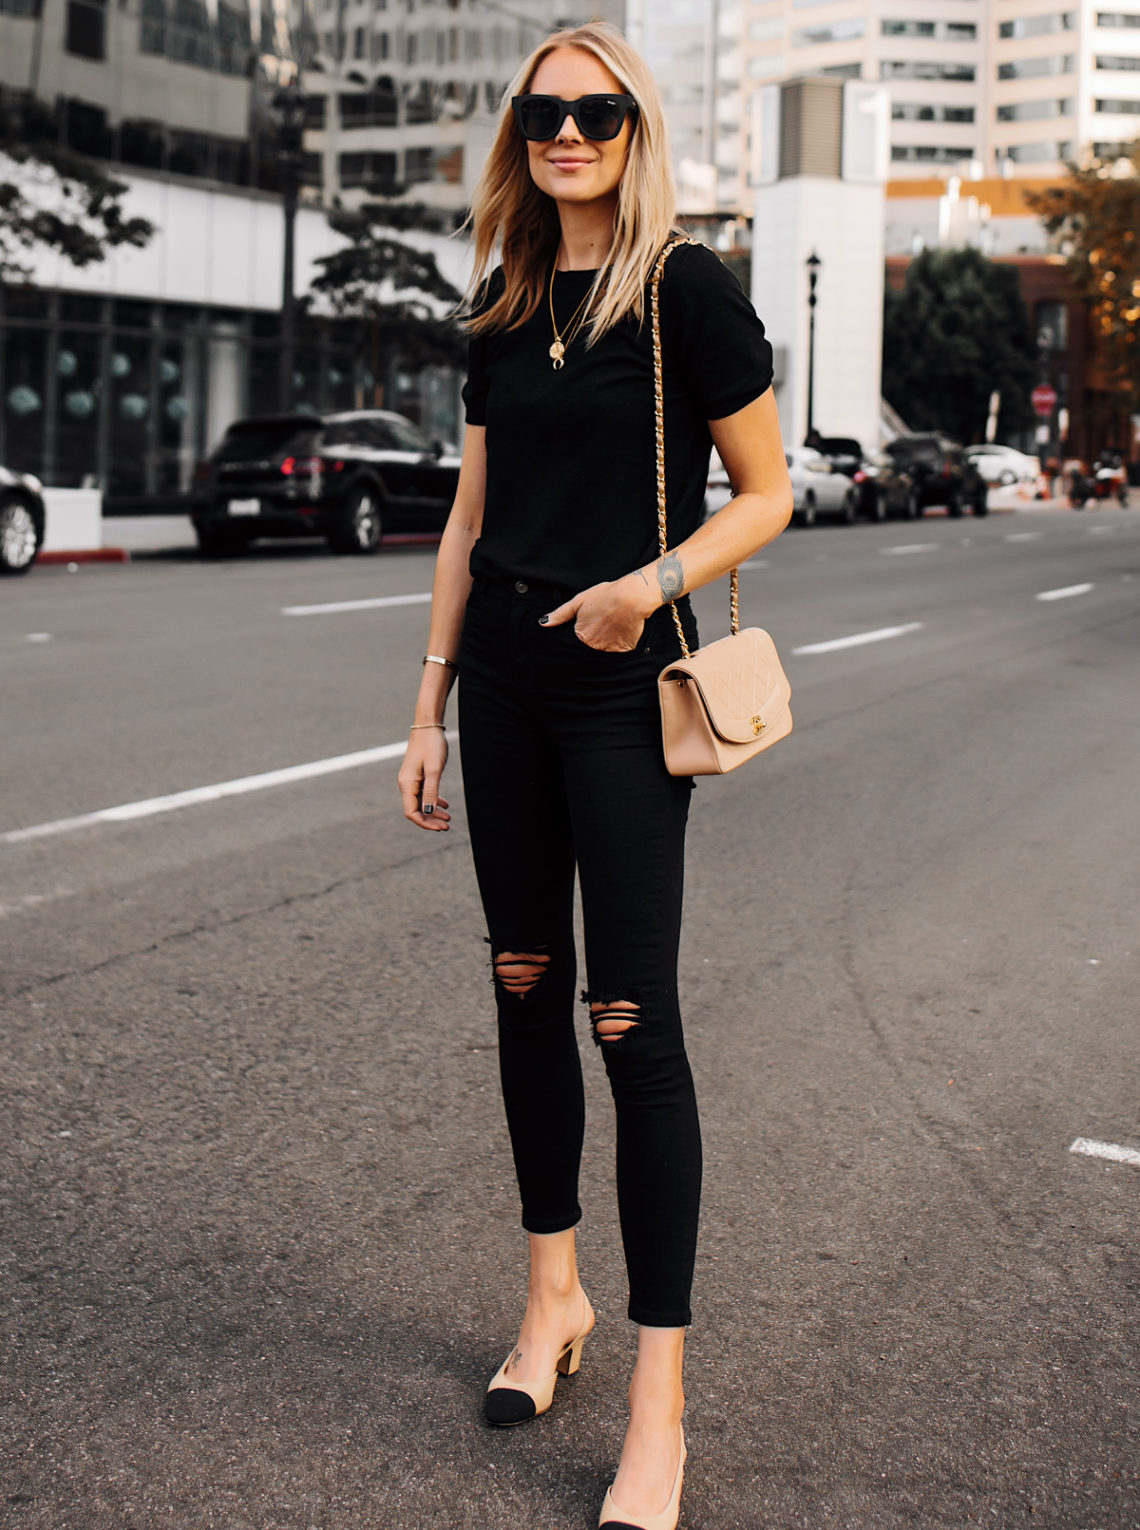 Blonde Woman Wearing Black Short Sleeve Top Black Ripped Skinny Jeans Chanel Diana Tan Handbag Chanel Slingback Shoes Fashion Jackson San Diego Fashion Blogger Street Style